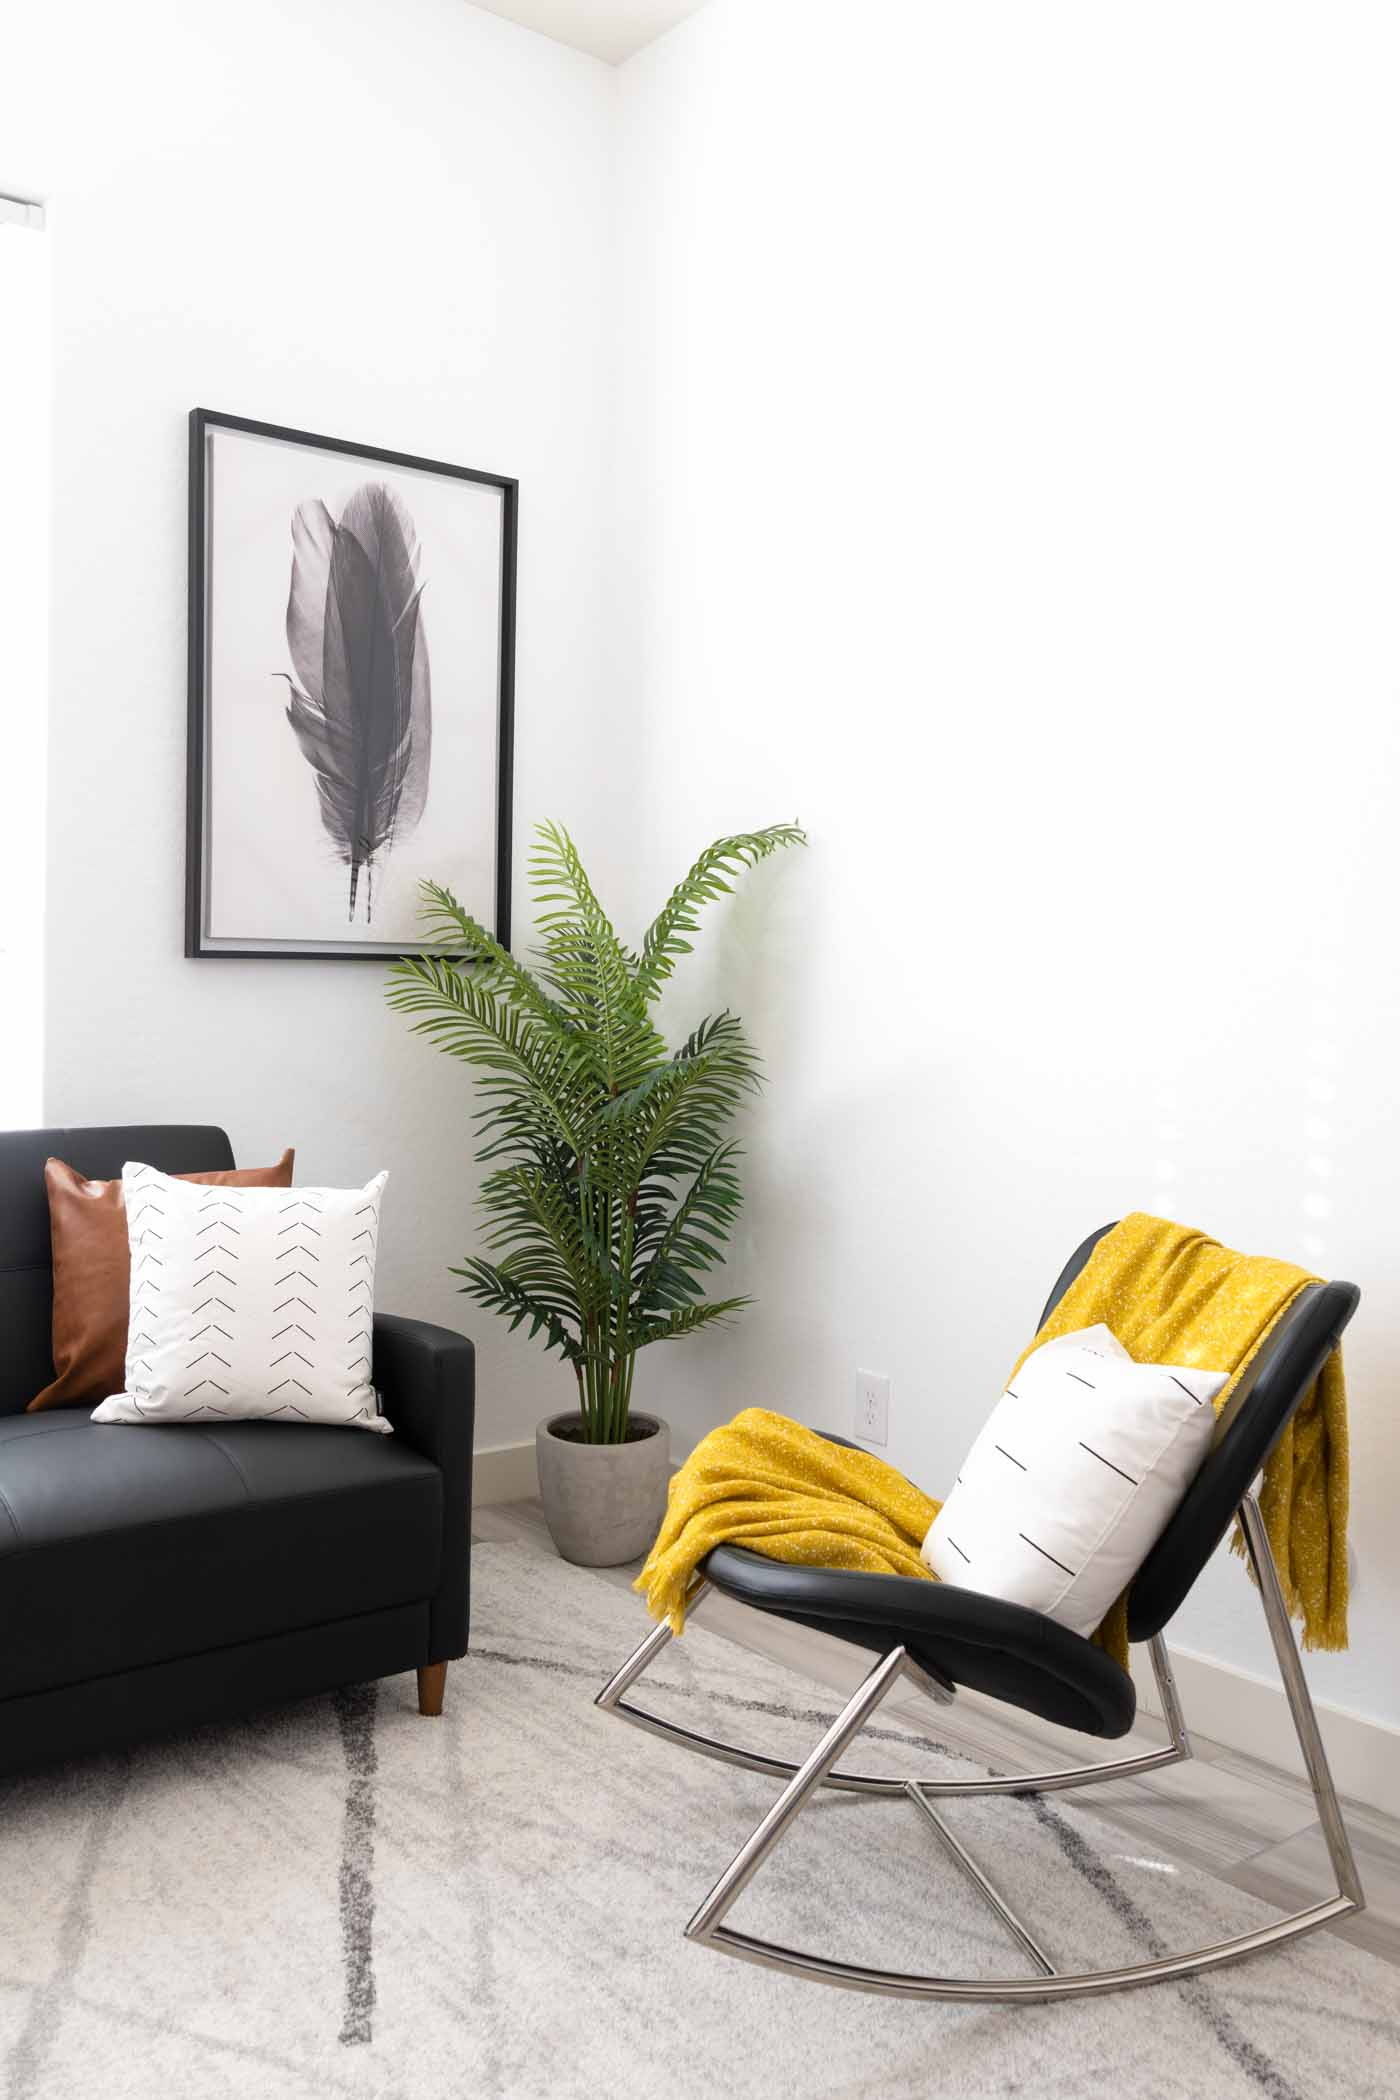 White wall to create the DIY color block accent